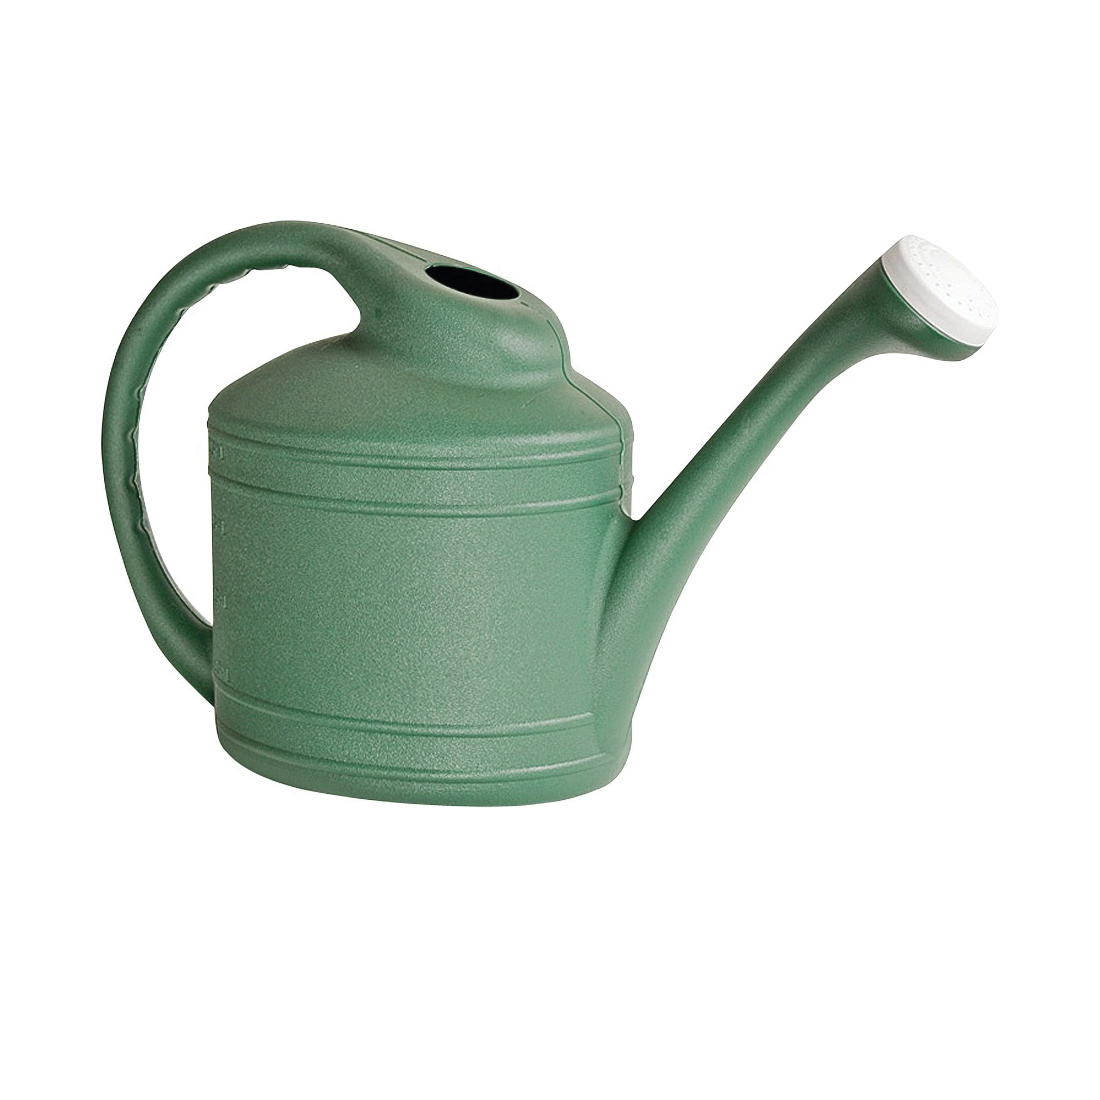 Picture of Southern Patio WC8108FE Watering Can, 2 gal Can, Resin, Fern